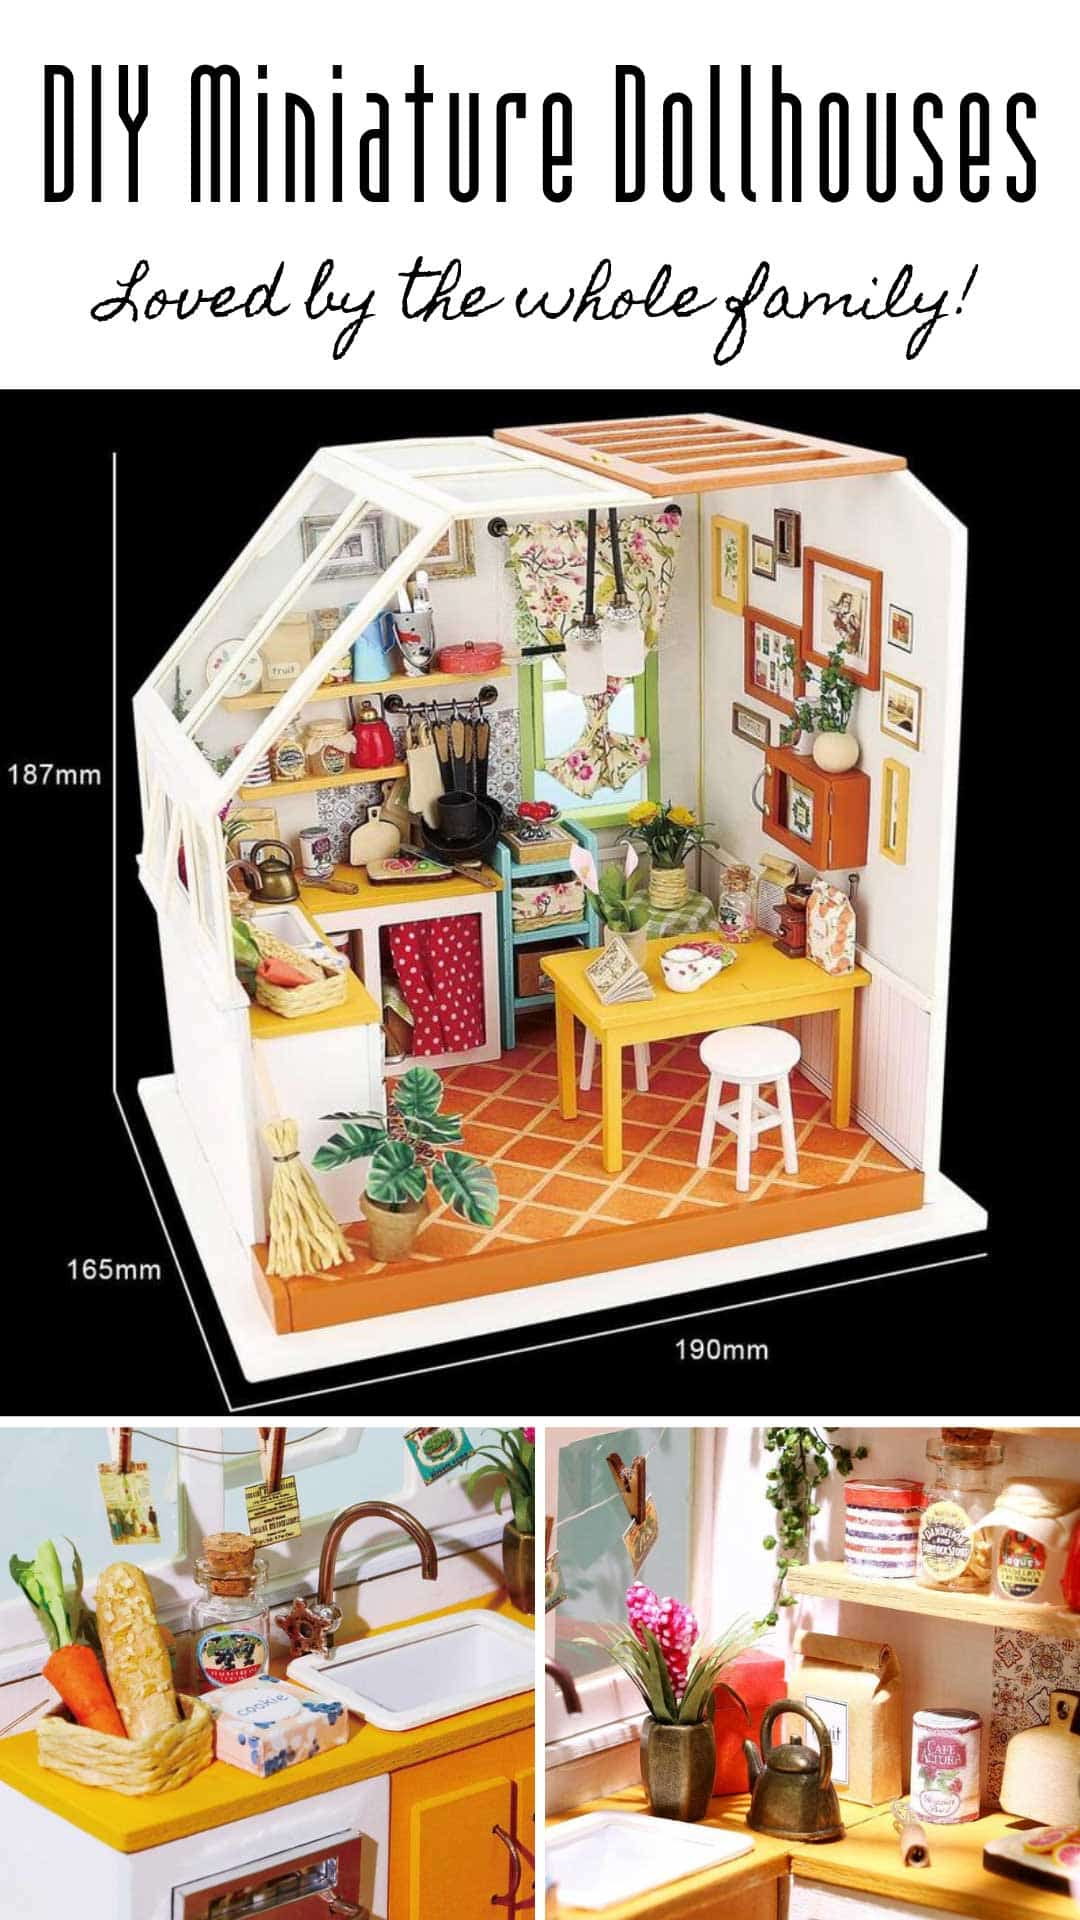 Have you seen these DIY miniature dollhouses? The detail in these kits is AMAZING! They make unique and thoughtful gifts for the crafter in your family!